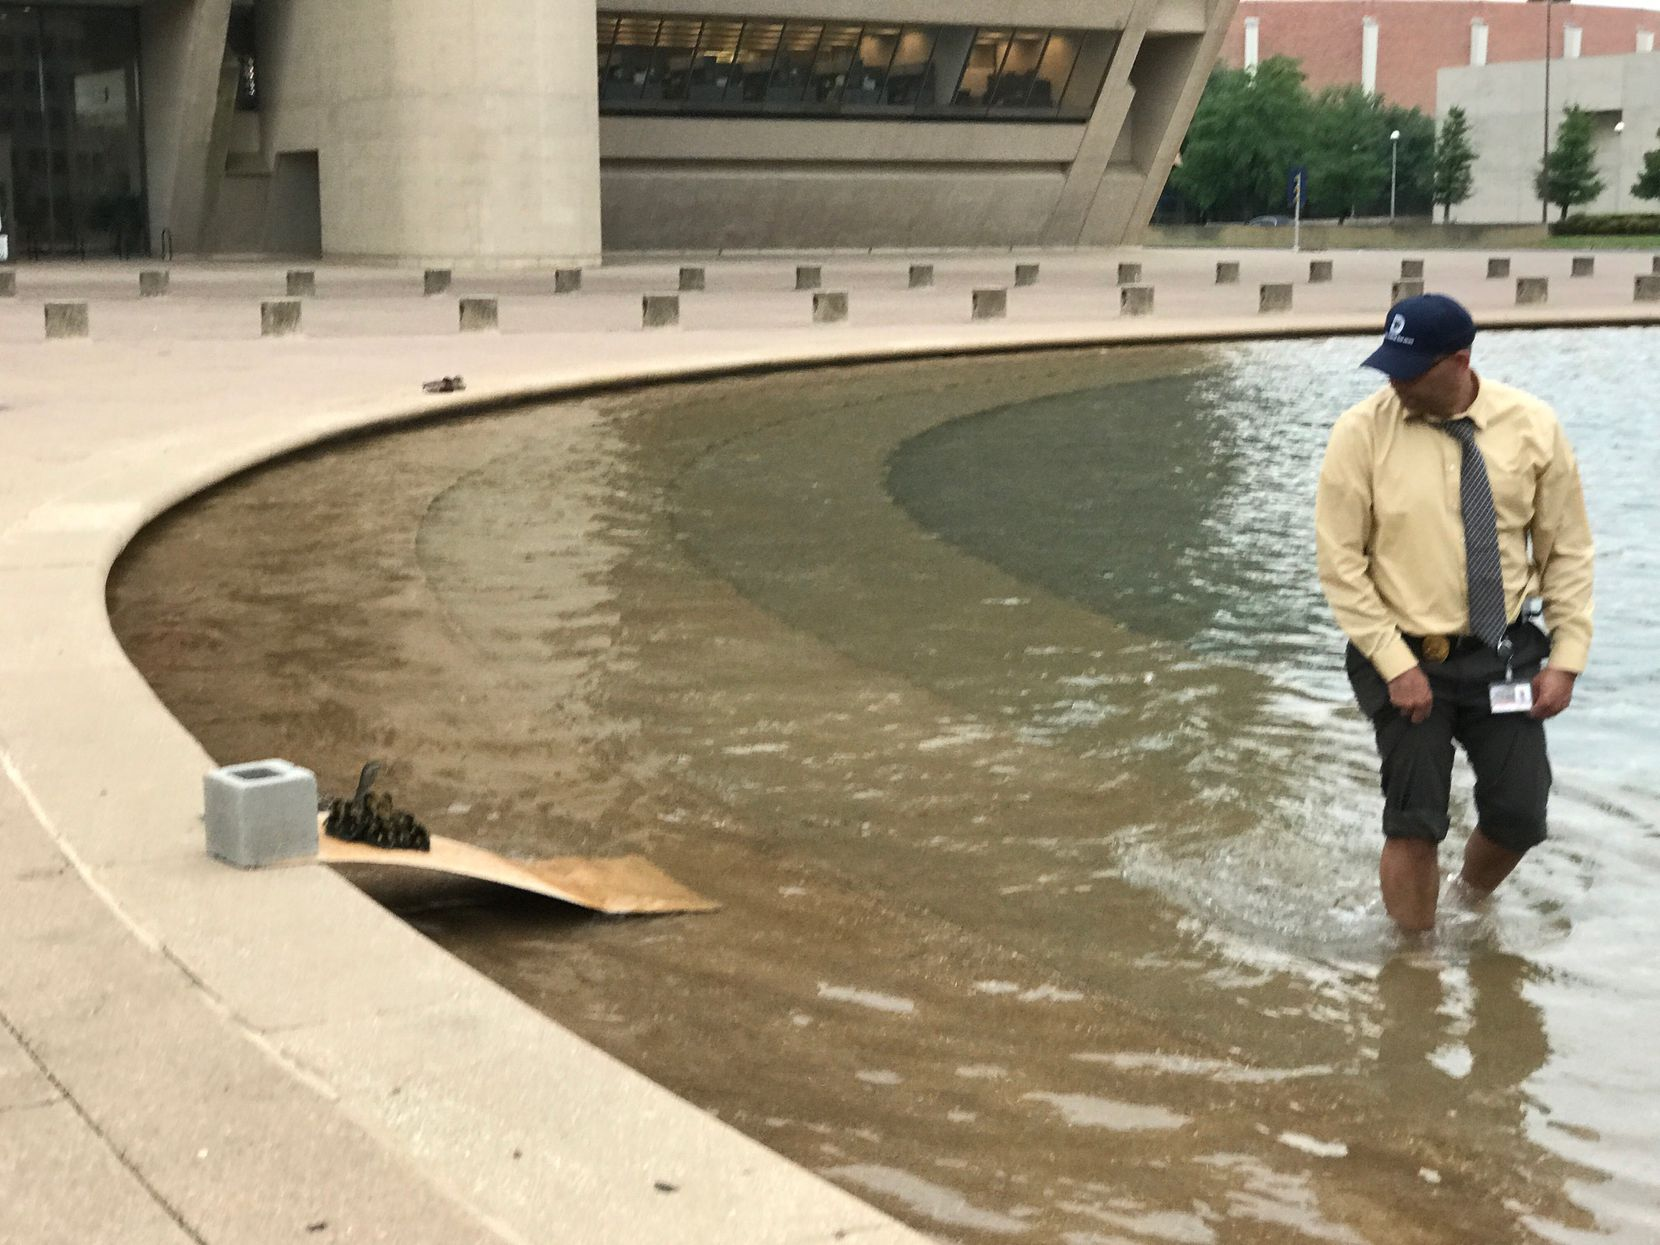 Dallas Animal Services director Ed Jamison waded into the reflecting pool at City Hall on April 23, 2019, to help herd a family of ducklings to safety after thy had tried unsuccessfully much of the day to clear the lip of the pool.